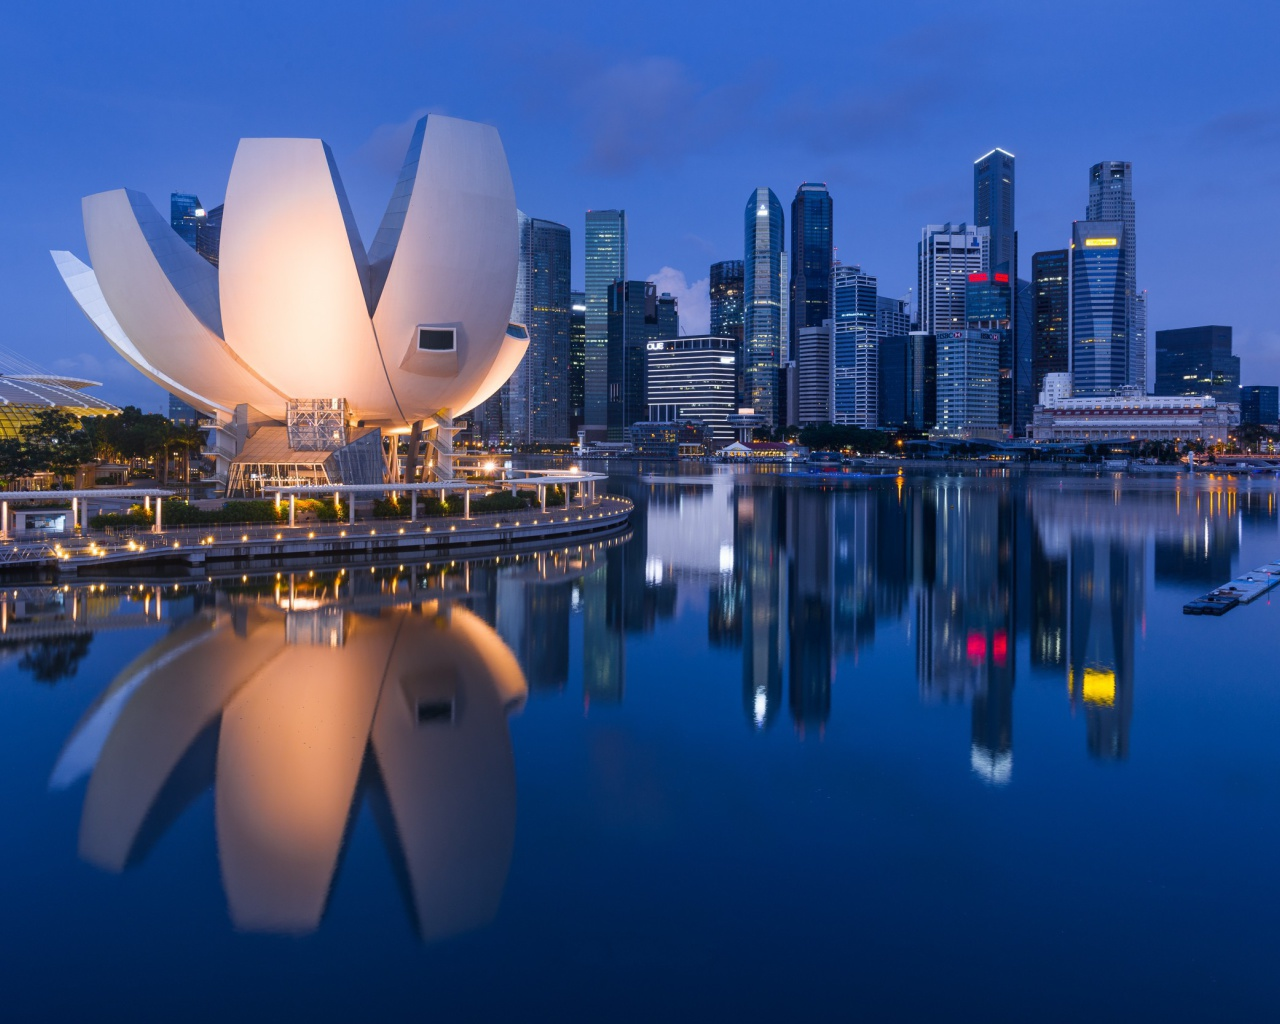 Das Singapore in Southeast Asia Wallpaper 1280x1024